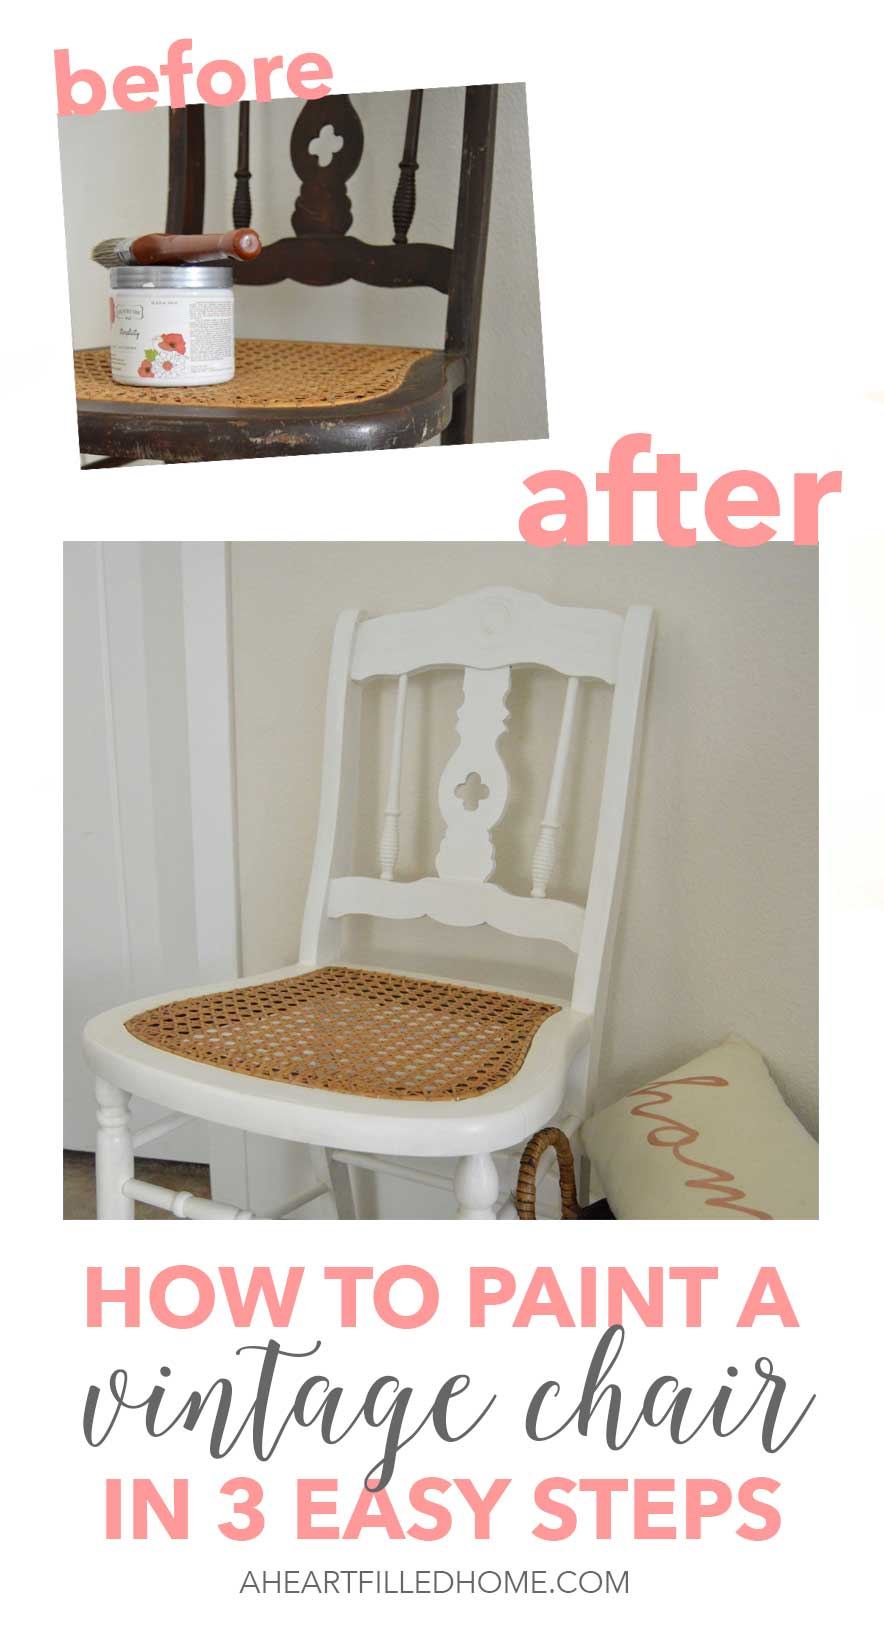 How to paint a vintage chair in 3 easy steps!